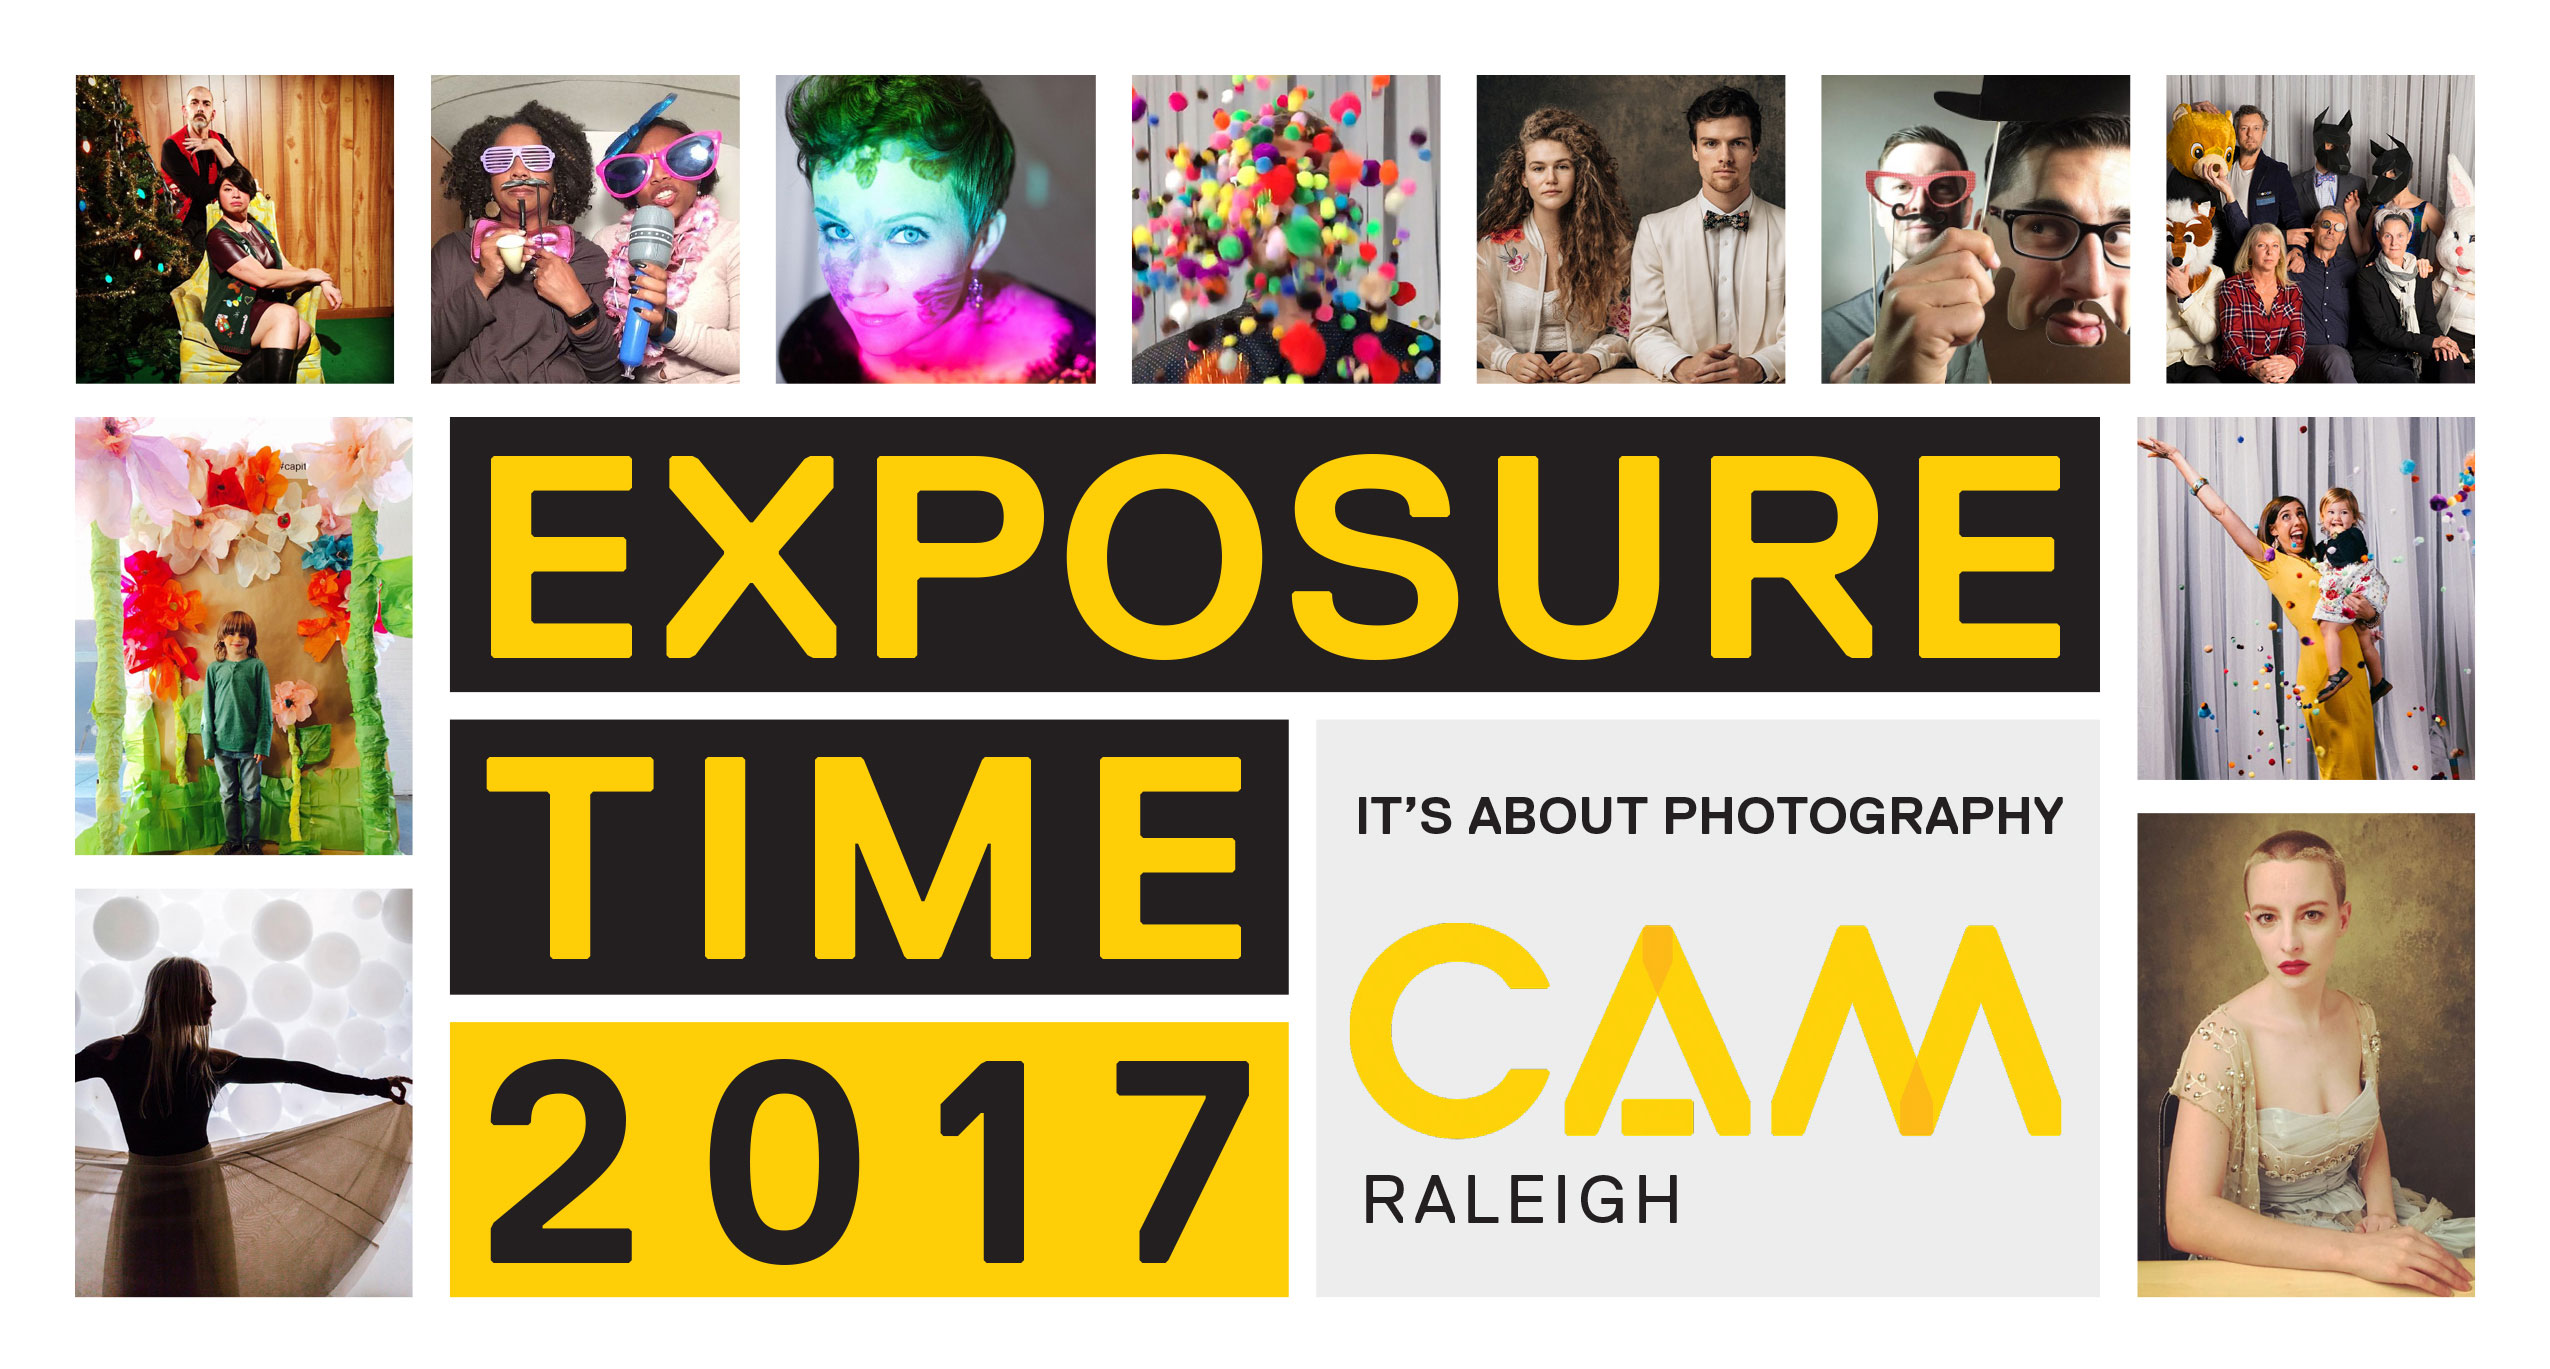 Exposure Time 2017